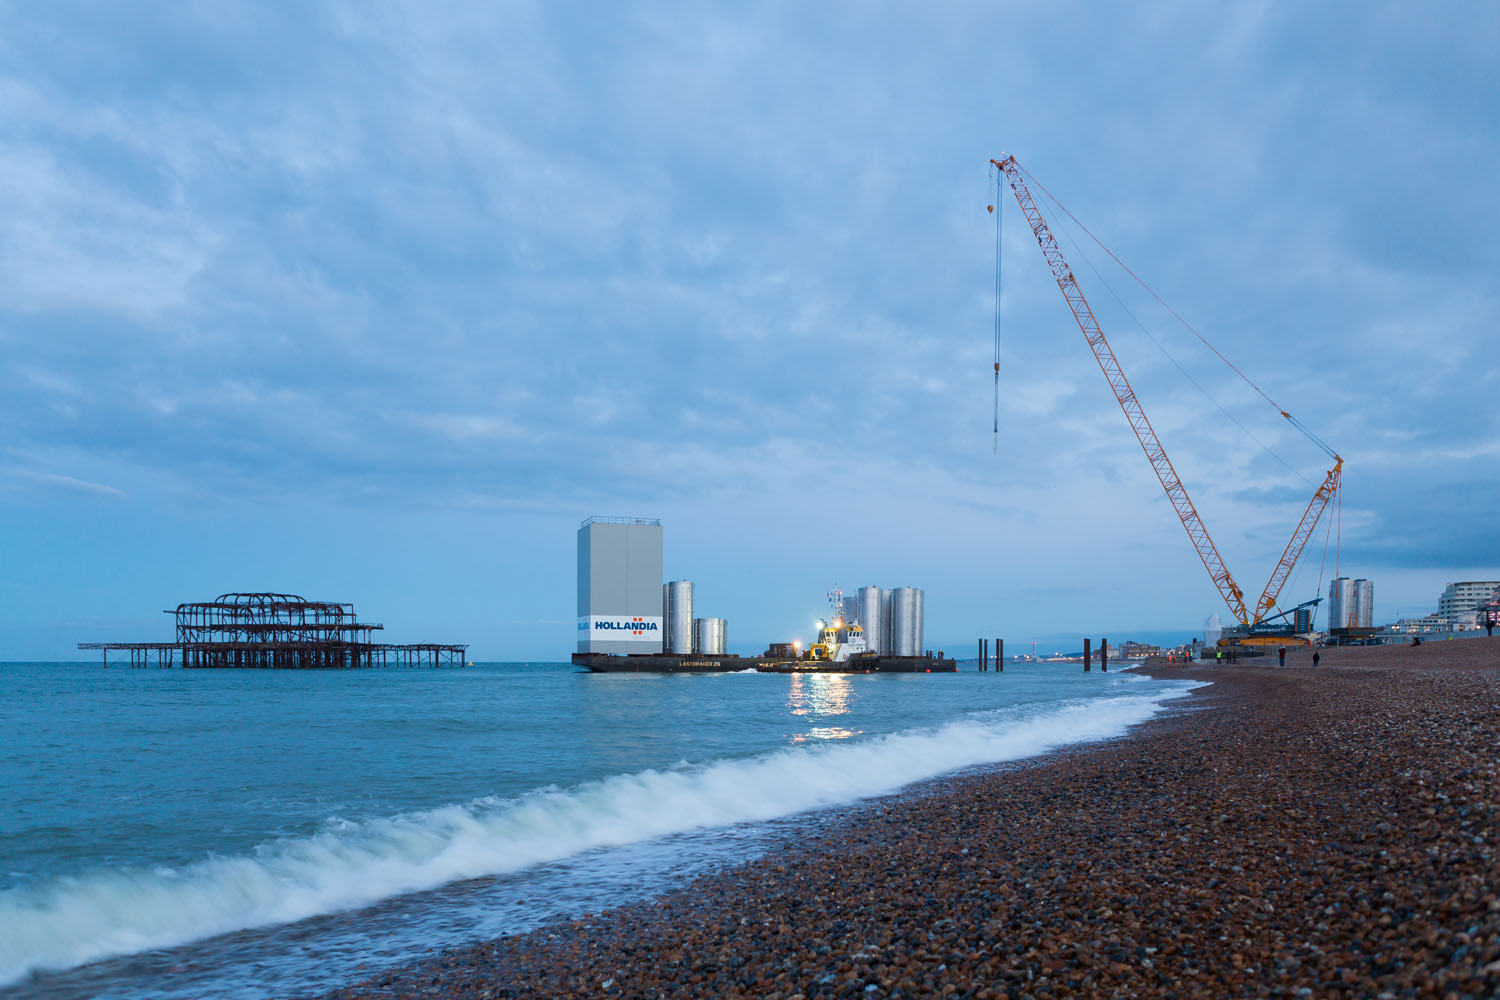 3rd Beach Landing on the 23rd June 2015. Image by Kevin Meredith